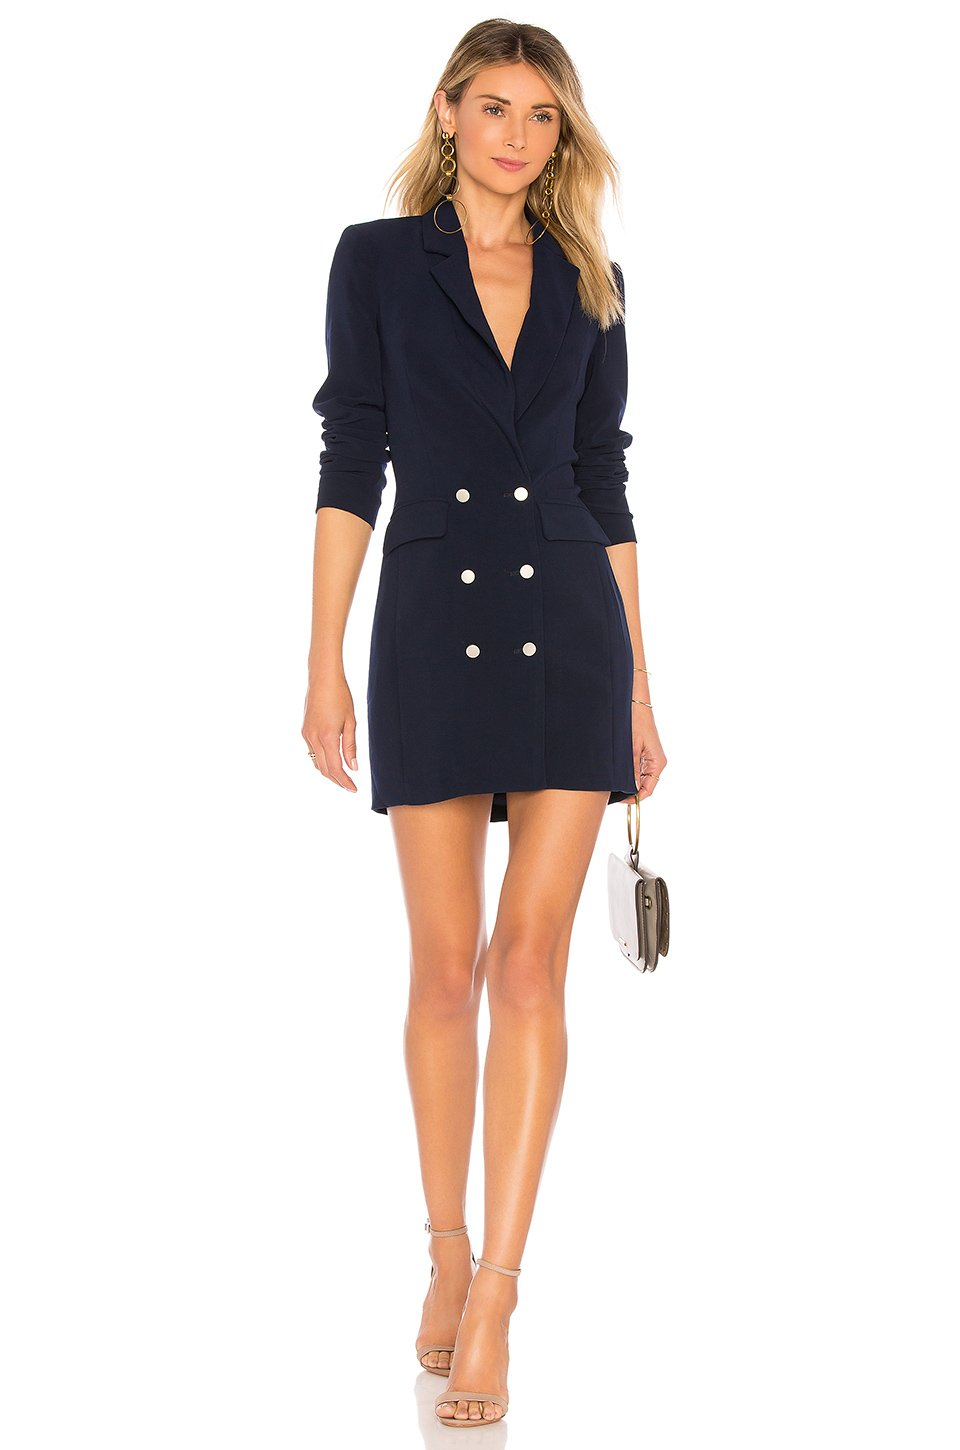 Madeline Blazer Dress in Navy